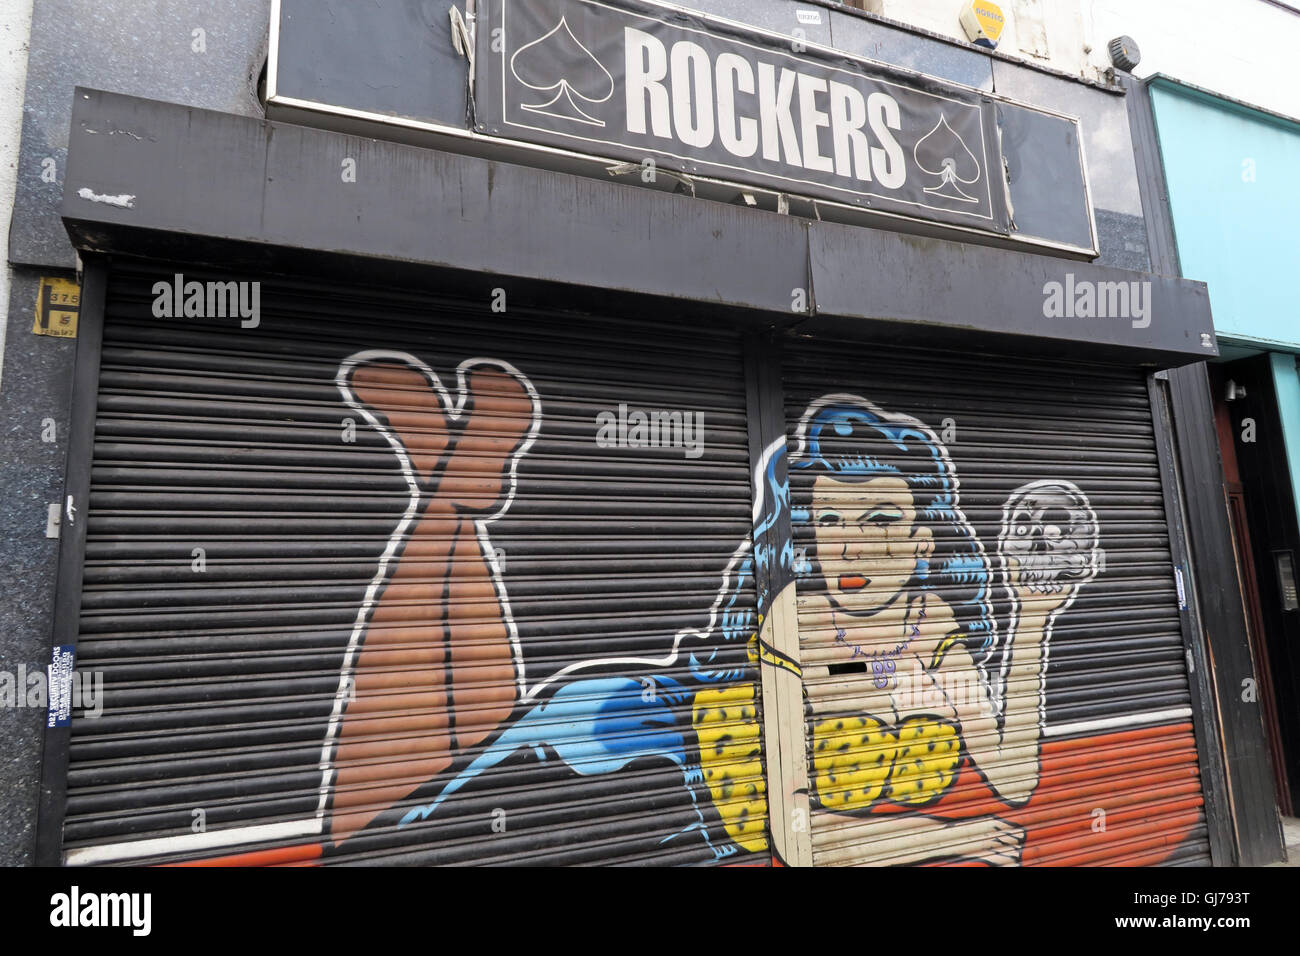 Rockers England shop shutters,  Northern Quarter Artwork, NQ, Manchester, North West England, UK, M1 1JR - Stock Image